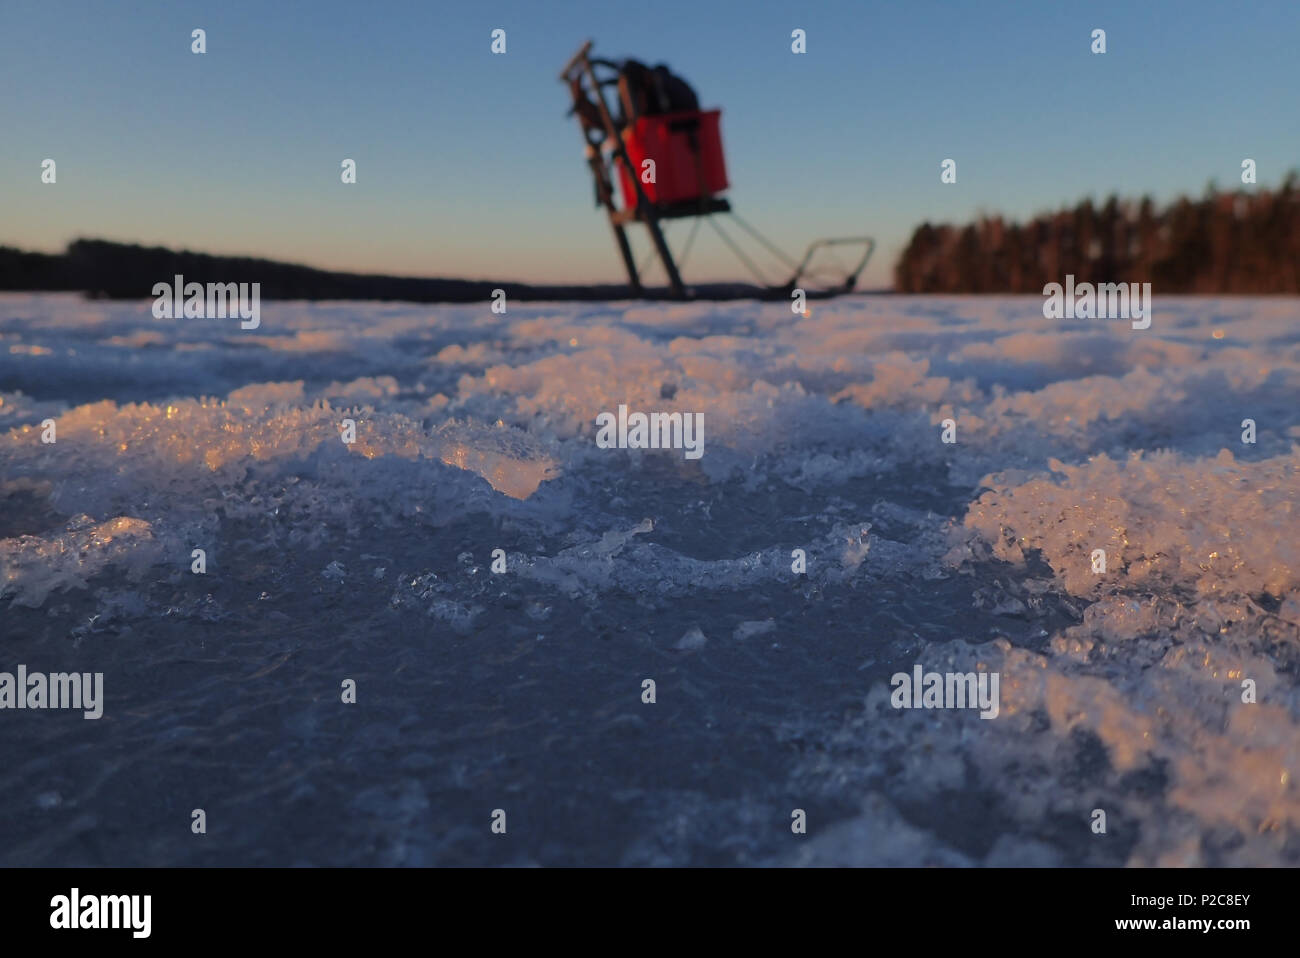 Kicksled: Sport utility vechicle for nature photographer. Lake Kukkia, Finland. 11.4.2018. - Stock Image